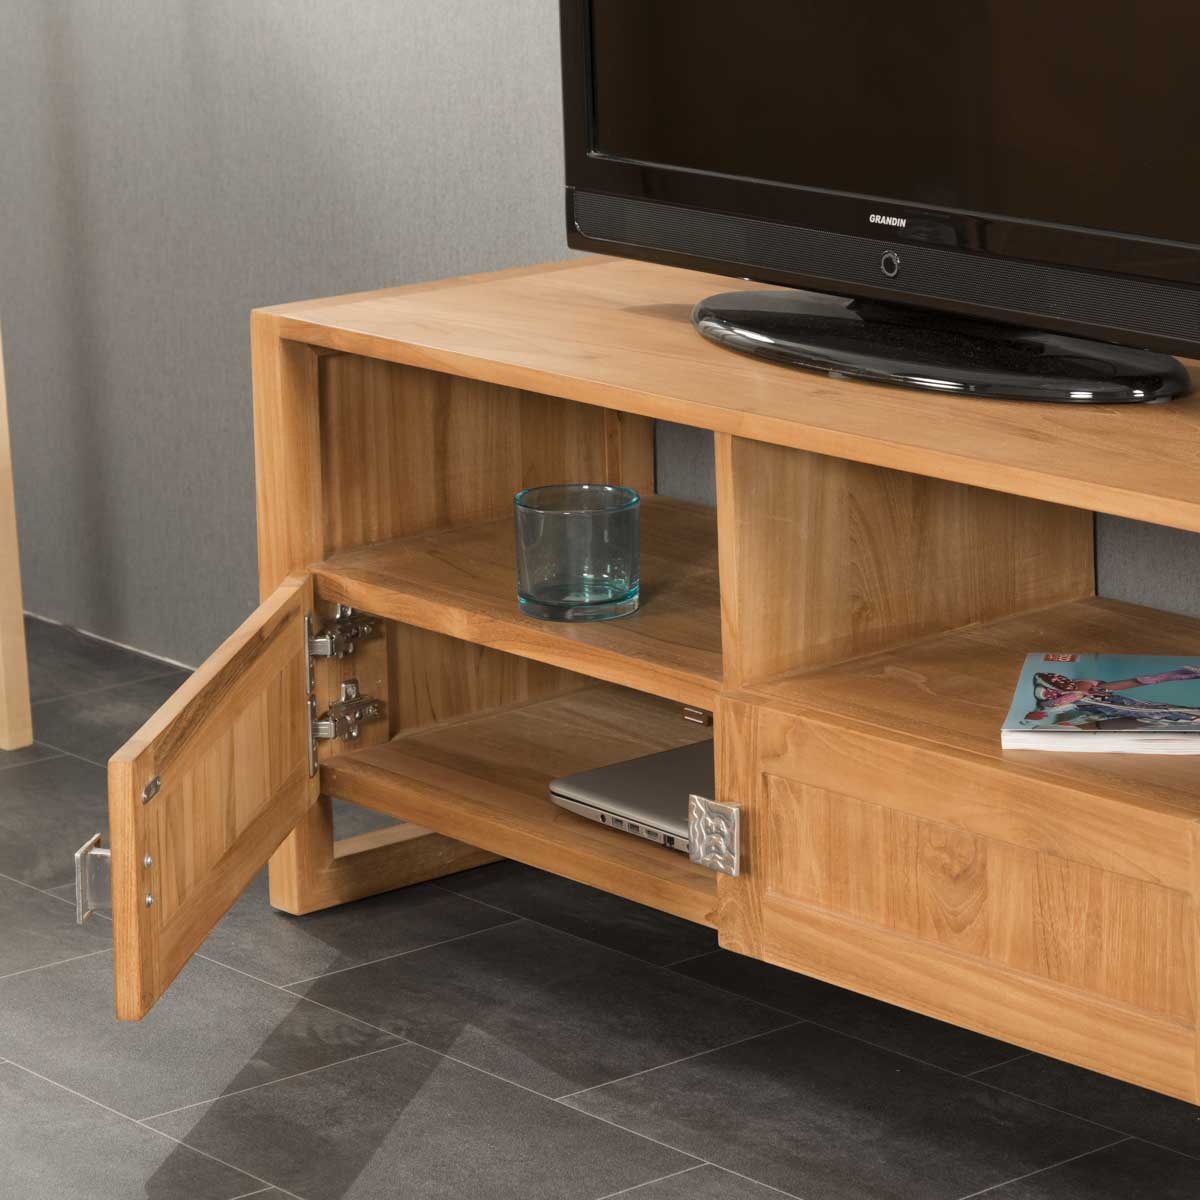 Meuble Tv Teck Meuble Tv Bois Naturel Rectangle Th A 110 X 50 Cm # Meuble Tv En Bois Exotique